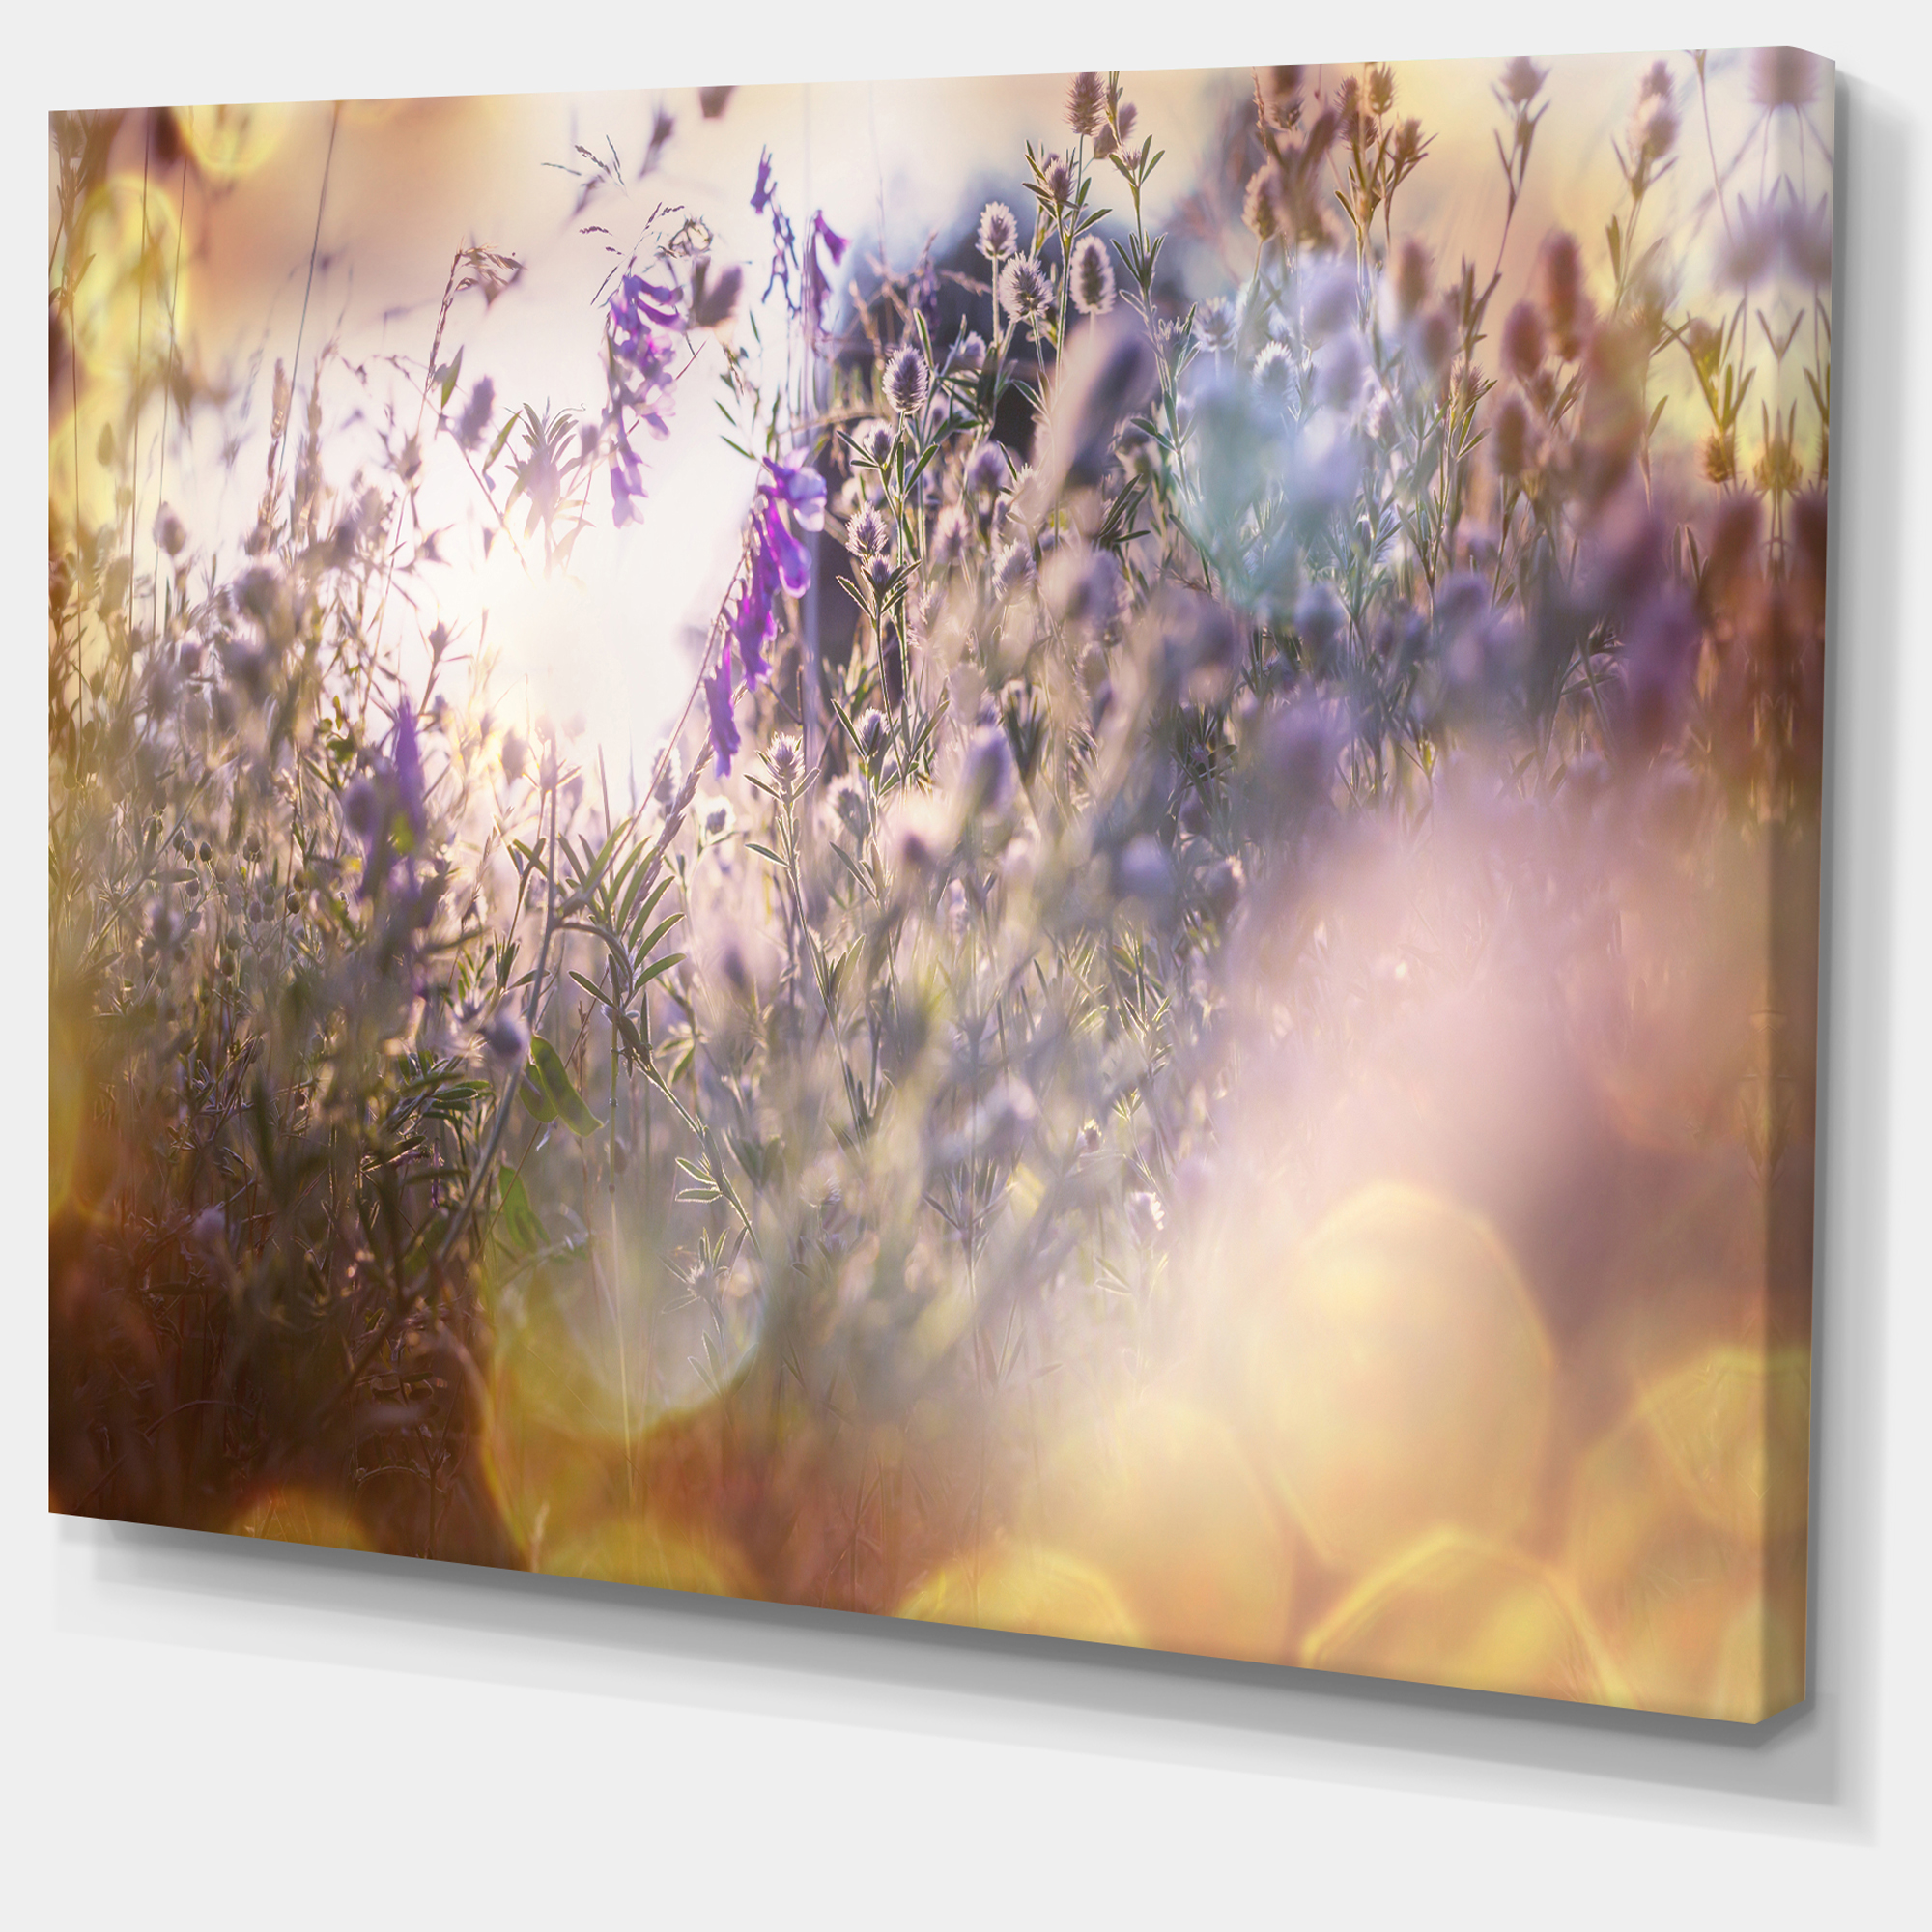 Summer Pasture with Purple Flowers - Extra Large Landscape Canvas Art - image 2 of 3